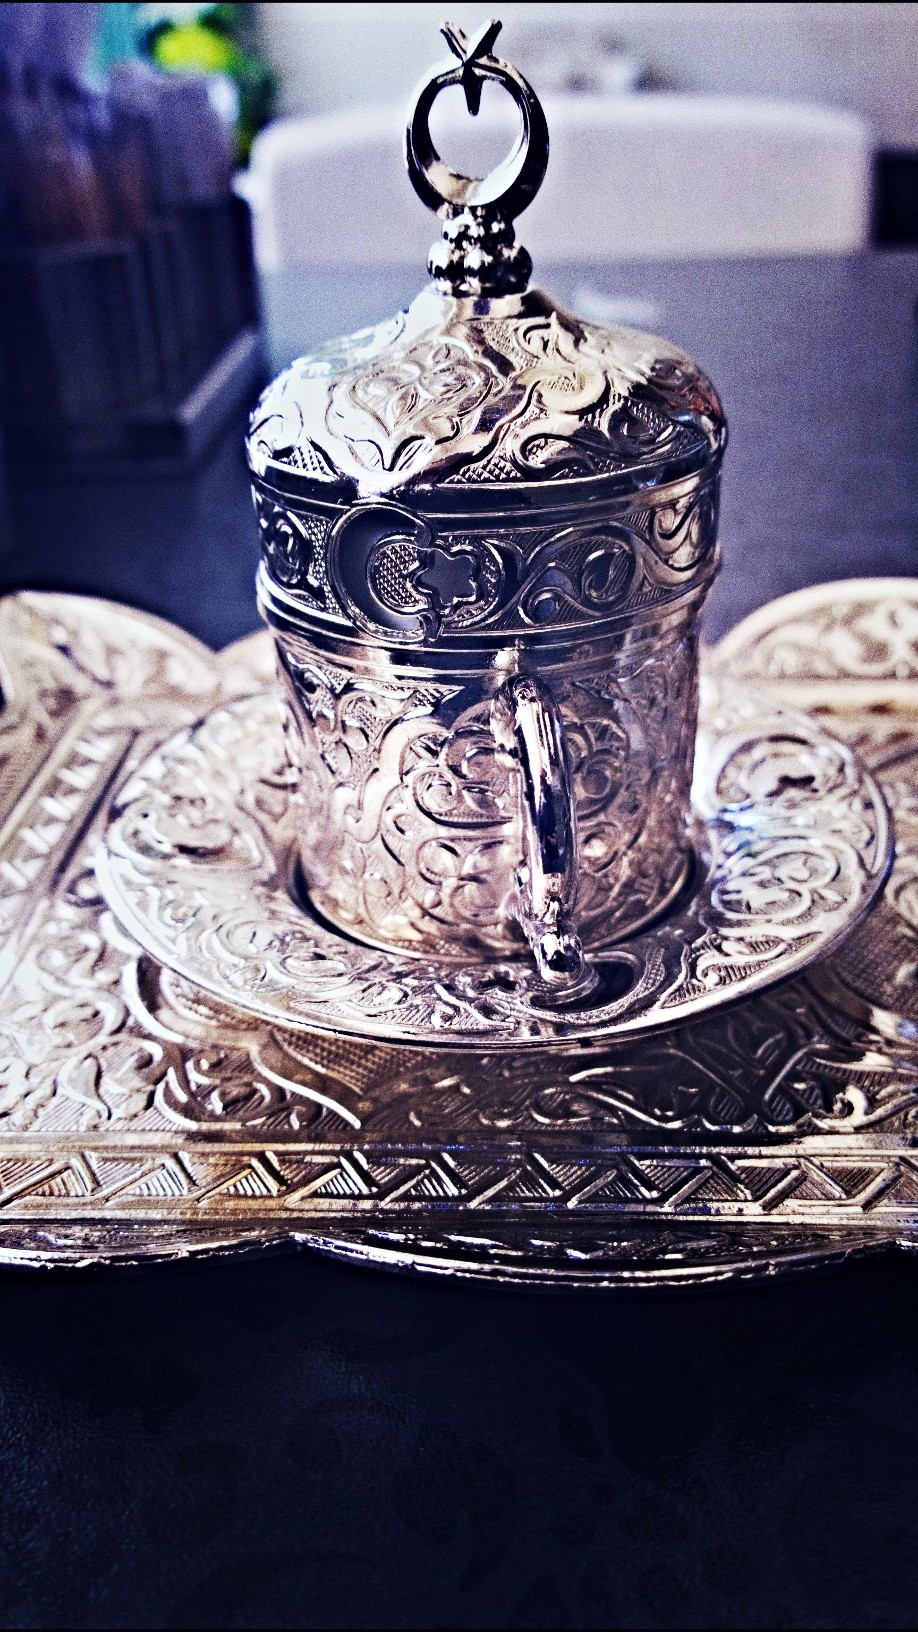 My favourite piece in the set is definitely the demitasse cup- with its cover. This one is un-apologetically Turkish and undeniably Middle Eastern.